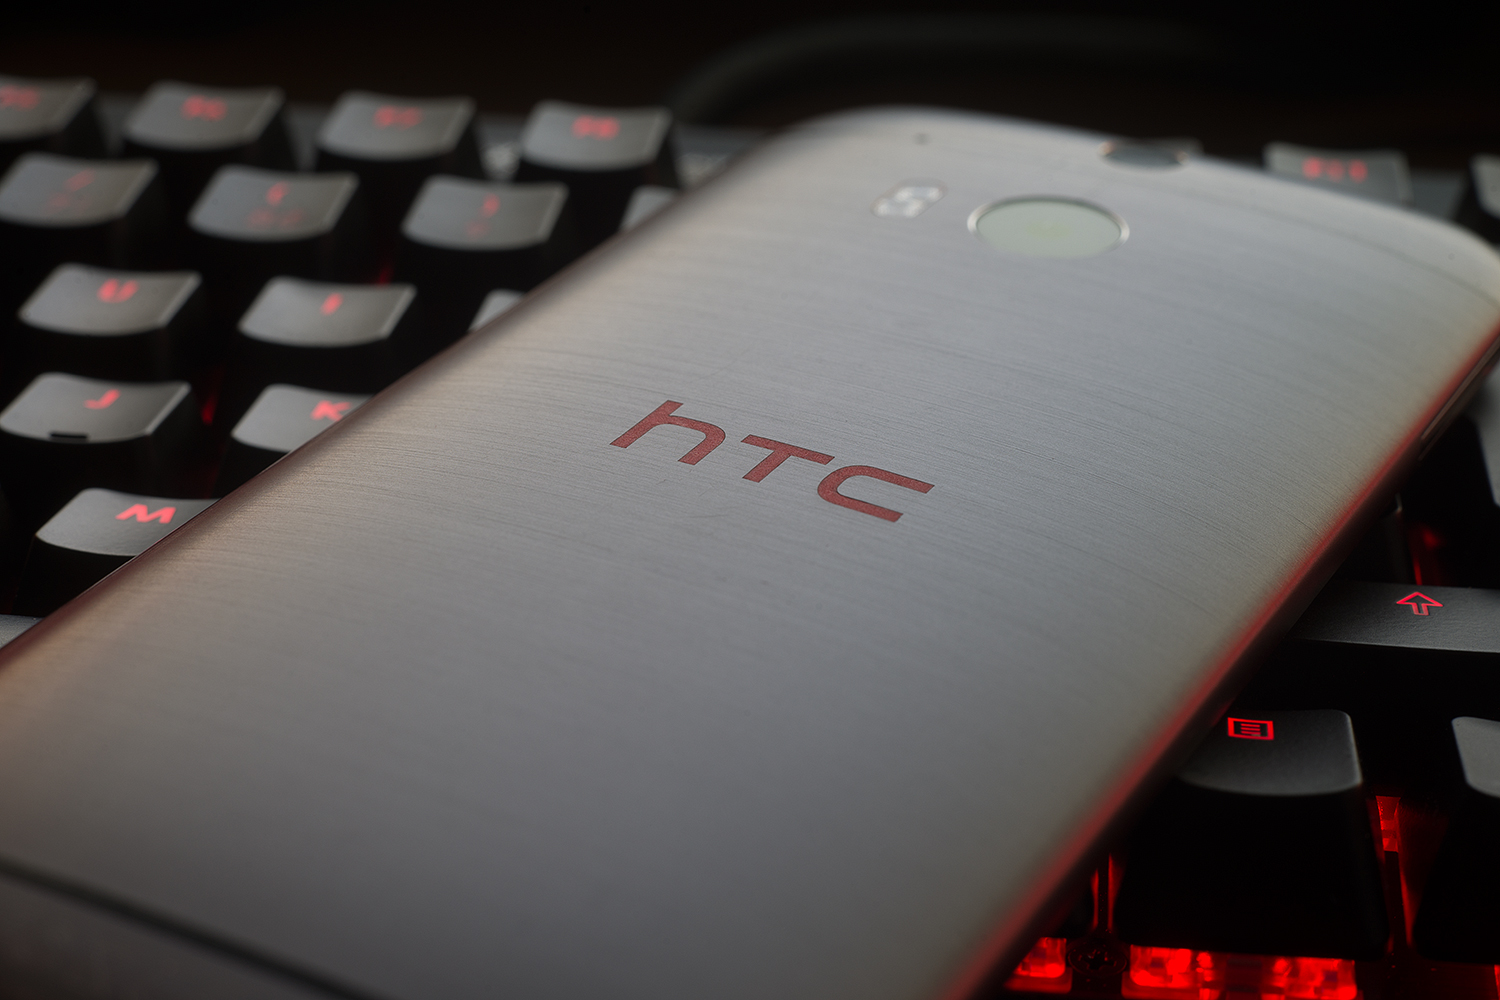 HTC One M10: Is It Worthy Of Its Price Tag